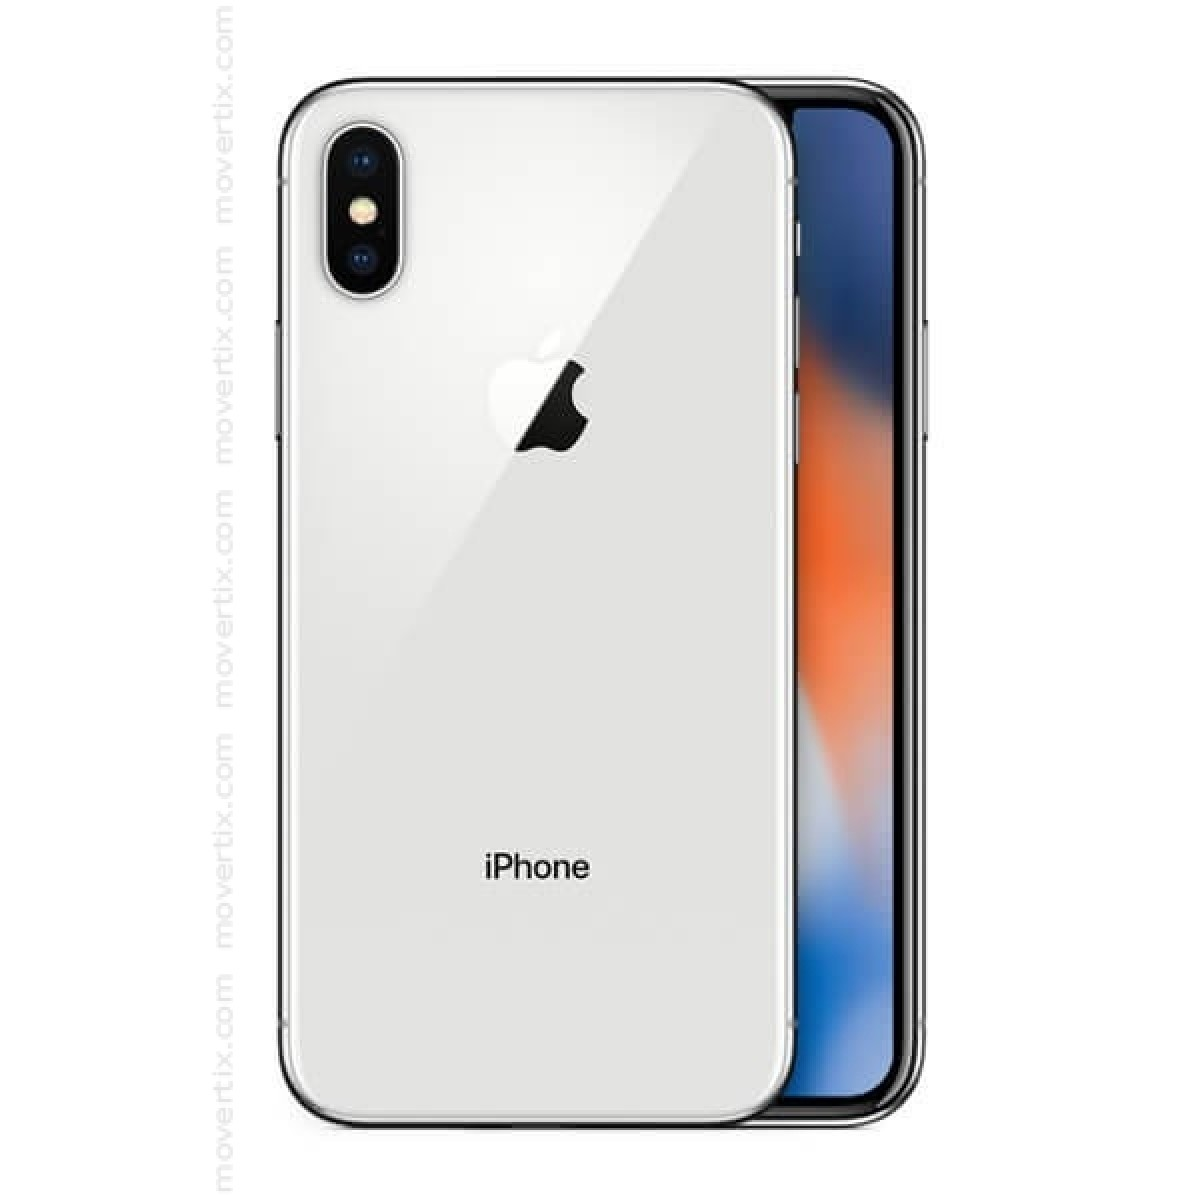 Tiendas De Moviles Libres Apple Iphone X En Plata De 64gb 0190198457509 Movertix